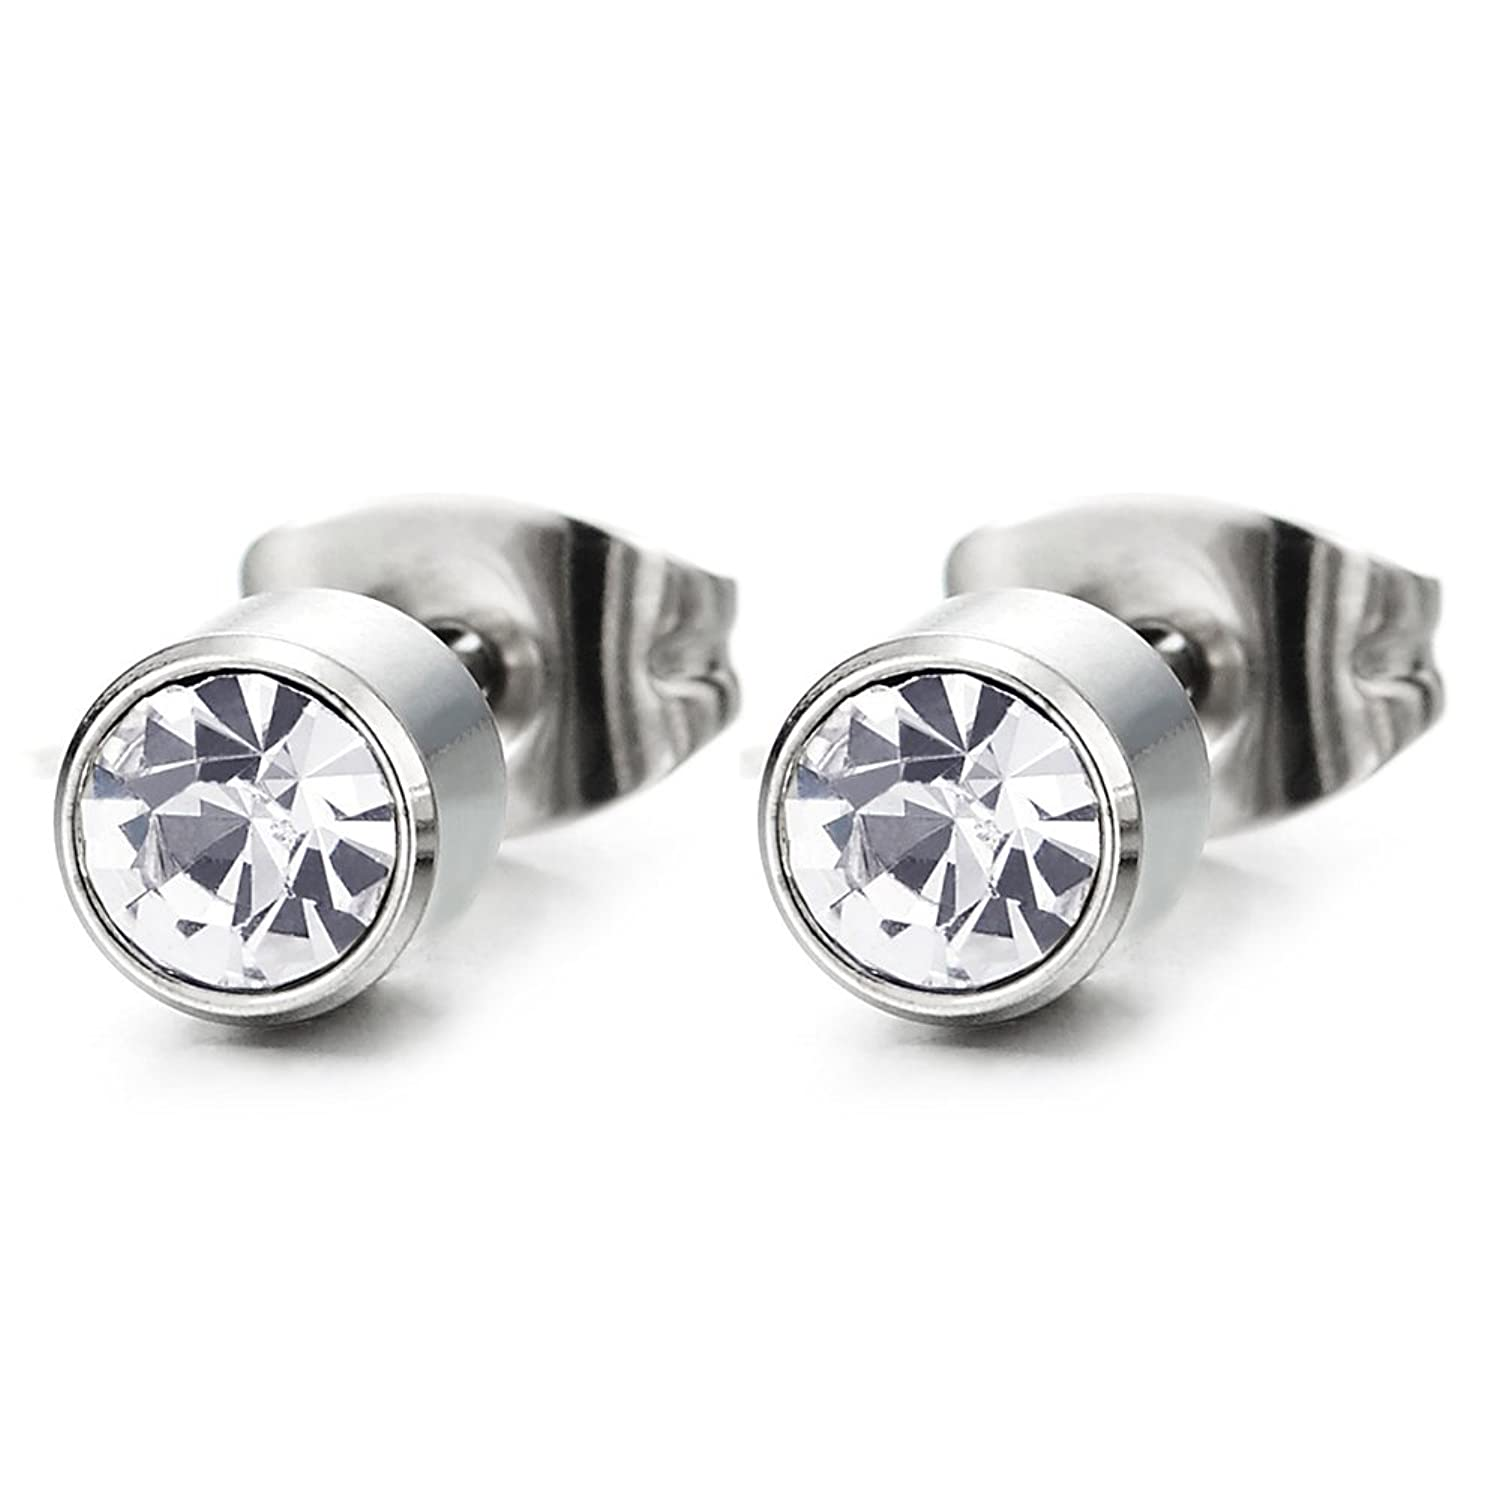 5MM Mens Womens Circle Stud Earrings Stainless Steel with Cubic Zirconia, 2pcs